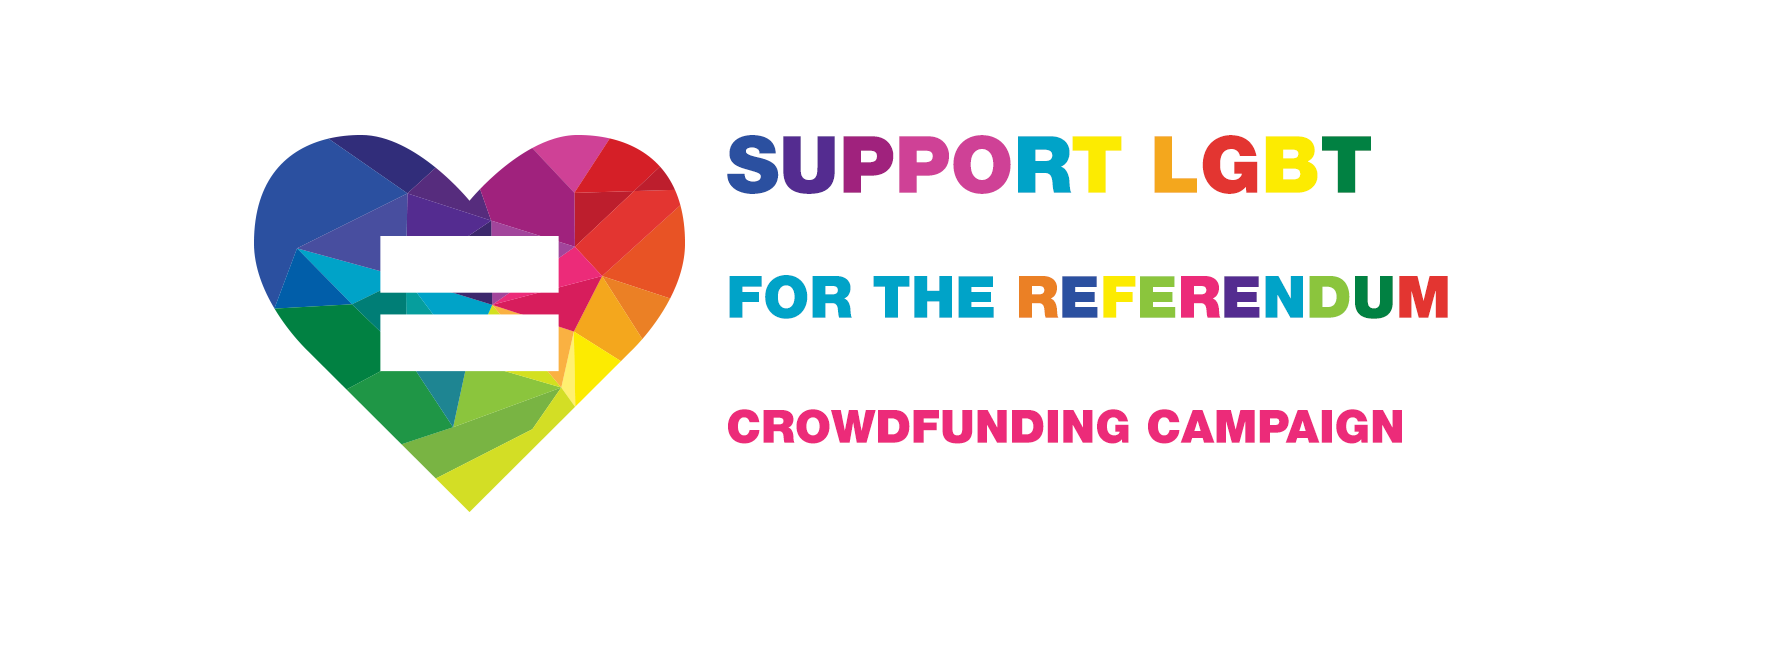 Support the LGBT Community in Romania: Crowdfunding Campaign